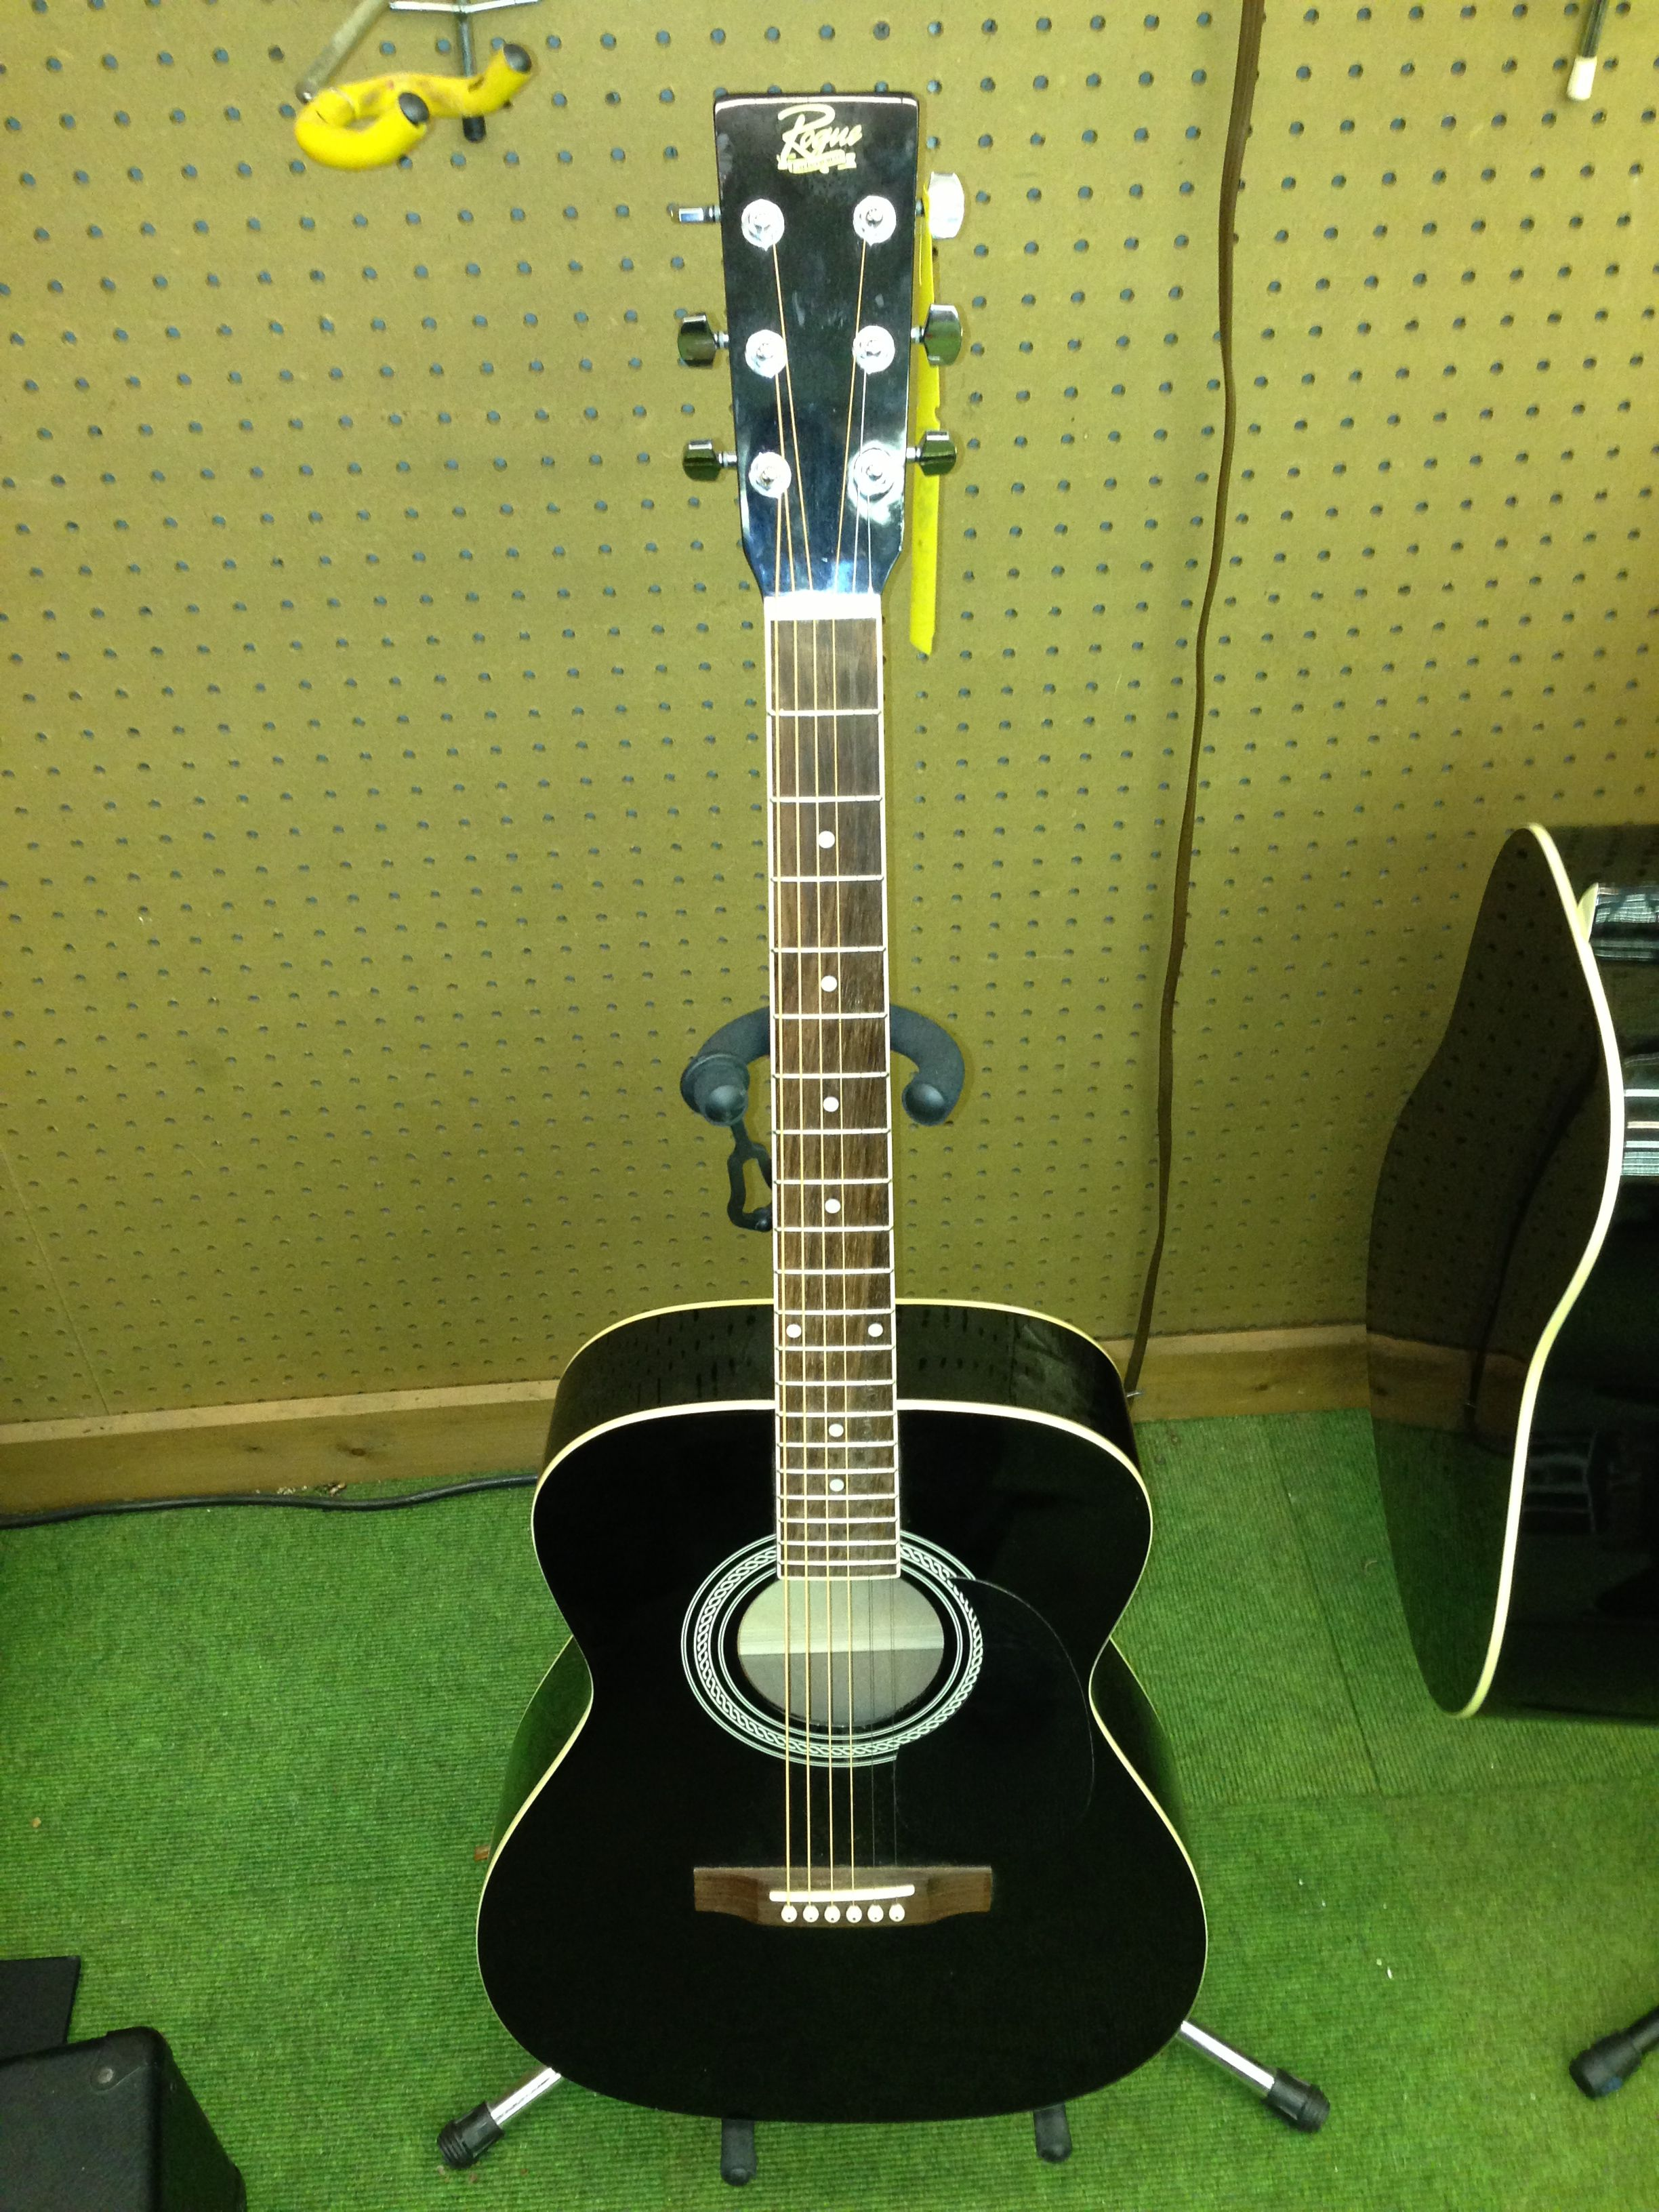 99 99 alvarez model rd10 acoustic guitar musical instruments